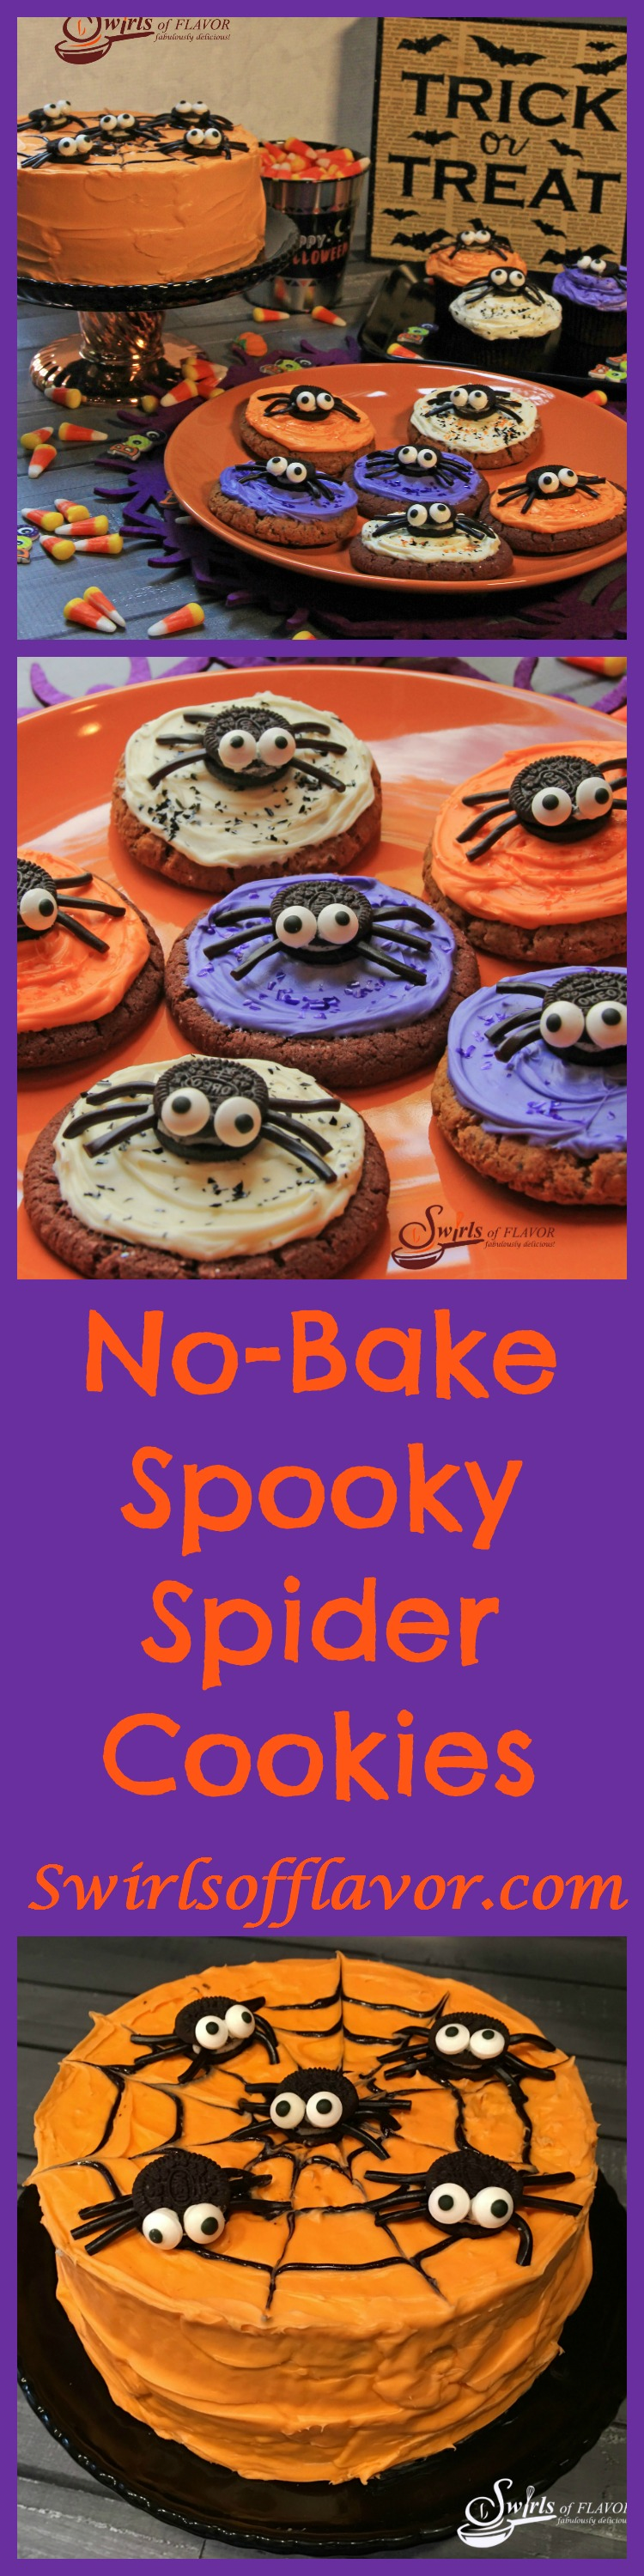 No-Bake Spooky Spider Cookies - Swirls of Flavor